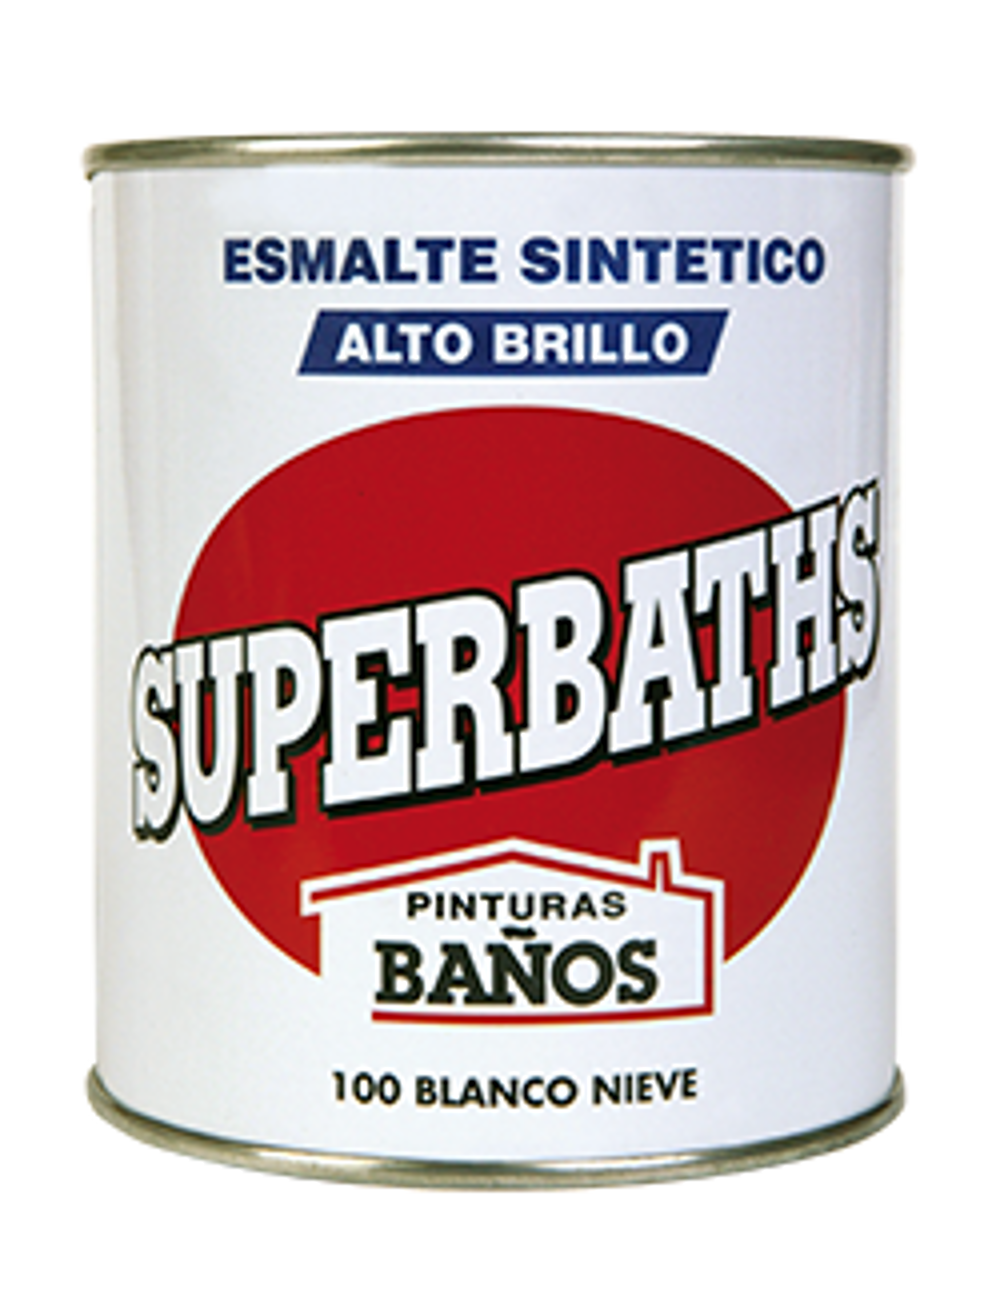 SUPERBATHS ESMALTE SINTETICO ALTO BRILLO 750ML